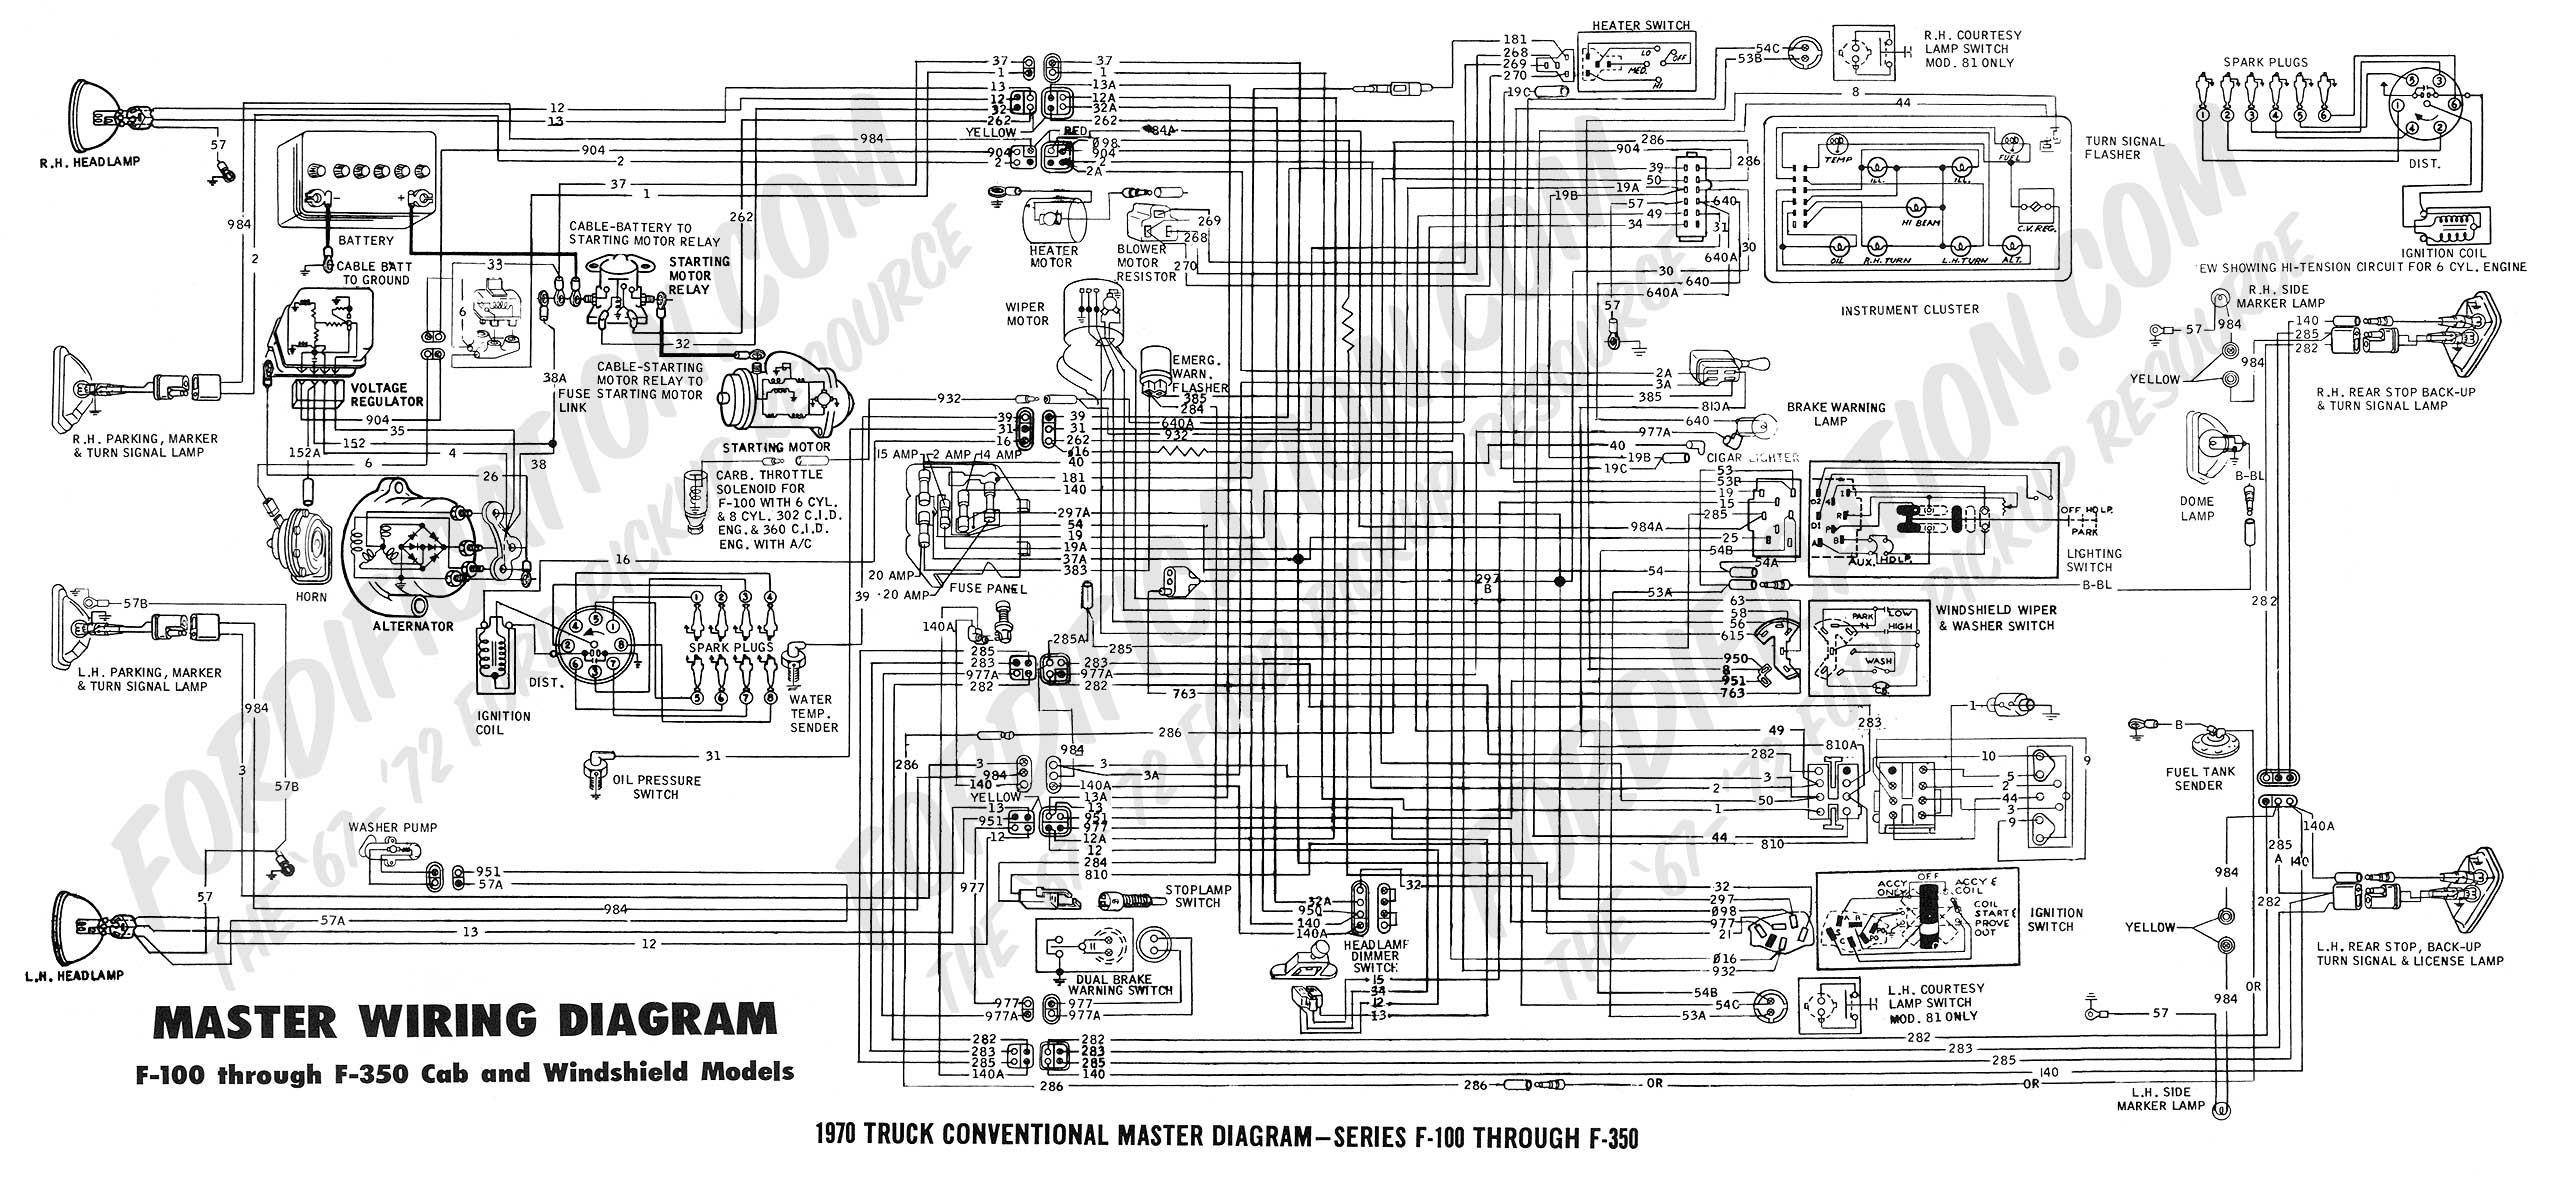 03 ford f150 wiring diagram ford xr3 wiring diagram ford wiring diagrams online